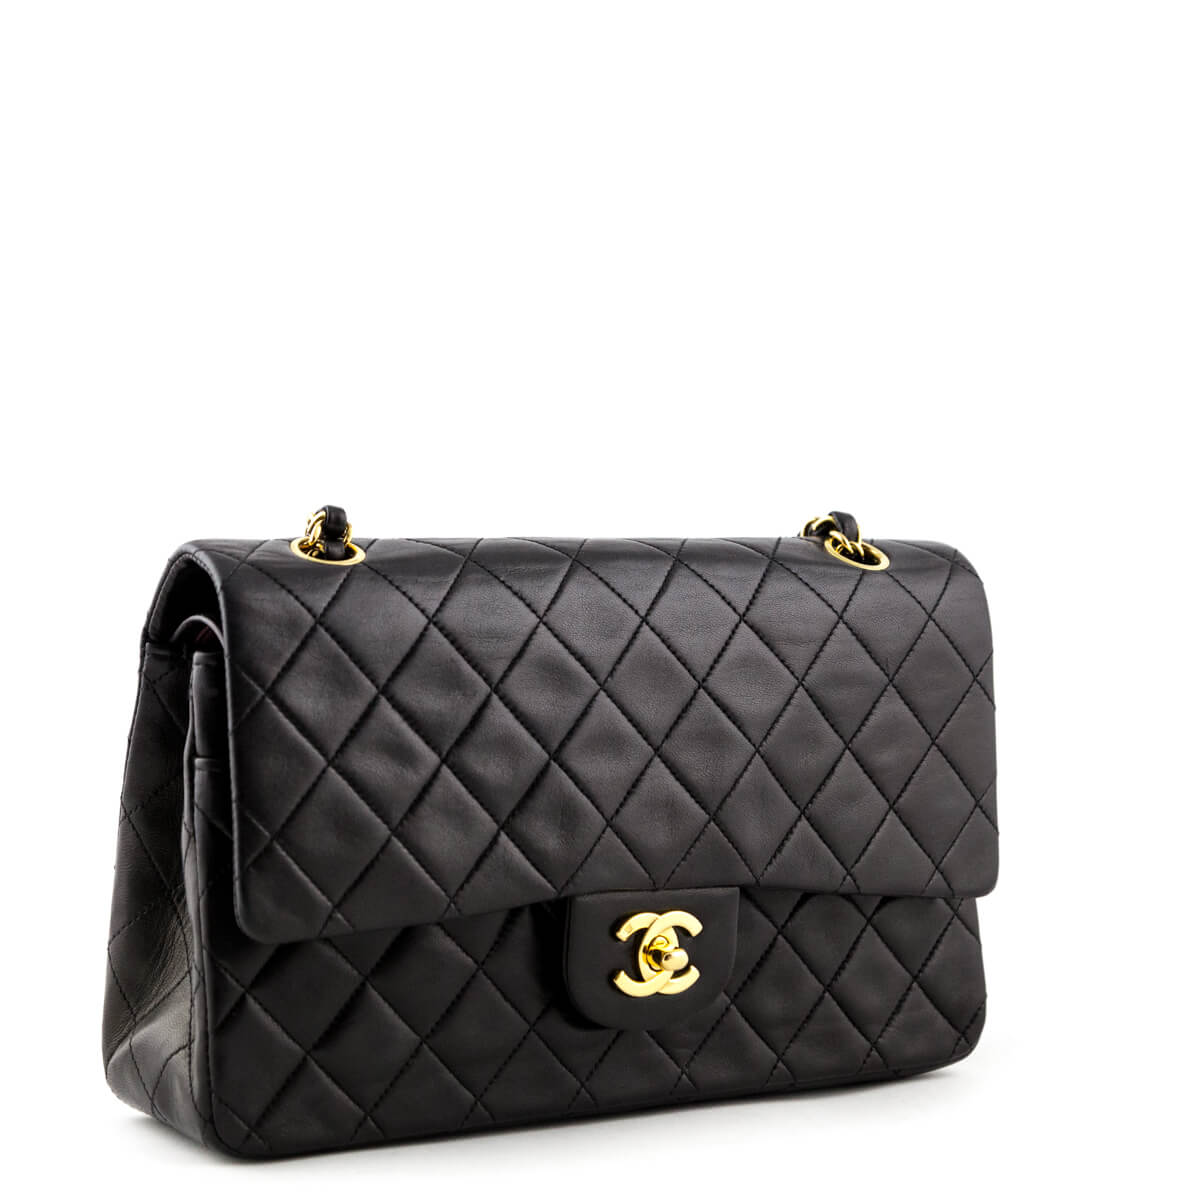 b0e47a646cac ... Chanel Black Lambskin Vintage Medium Classic Double Flap - LOVE that  BAG - Preowned Authentic Designer ...